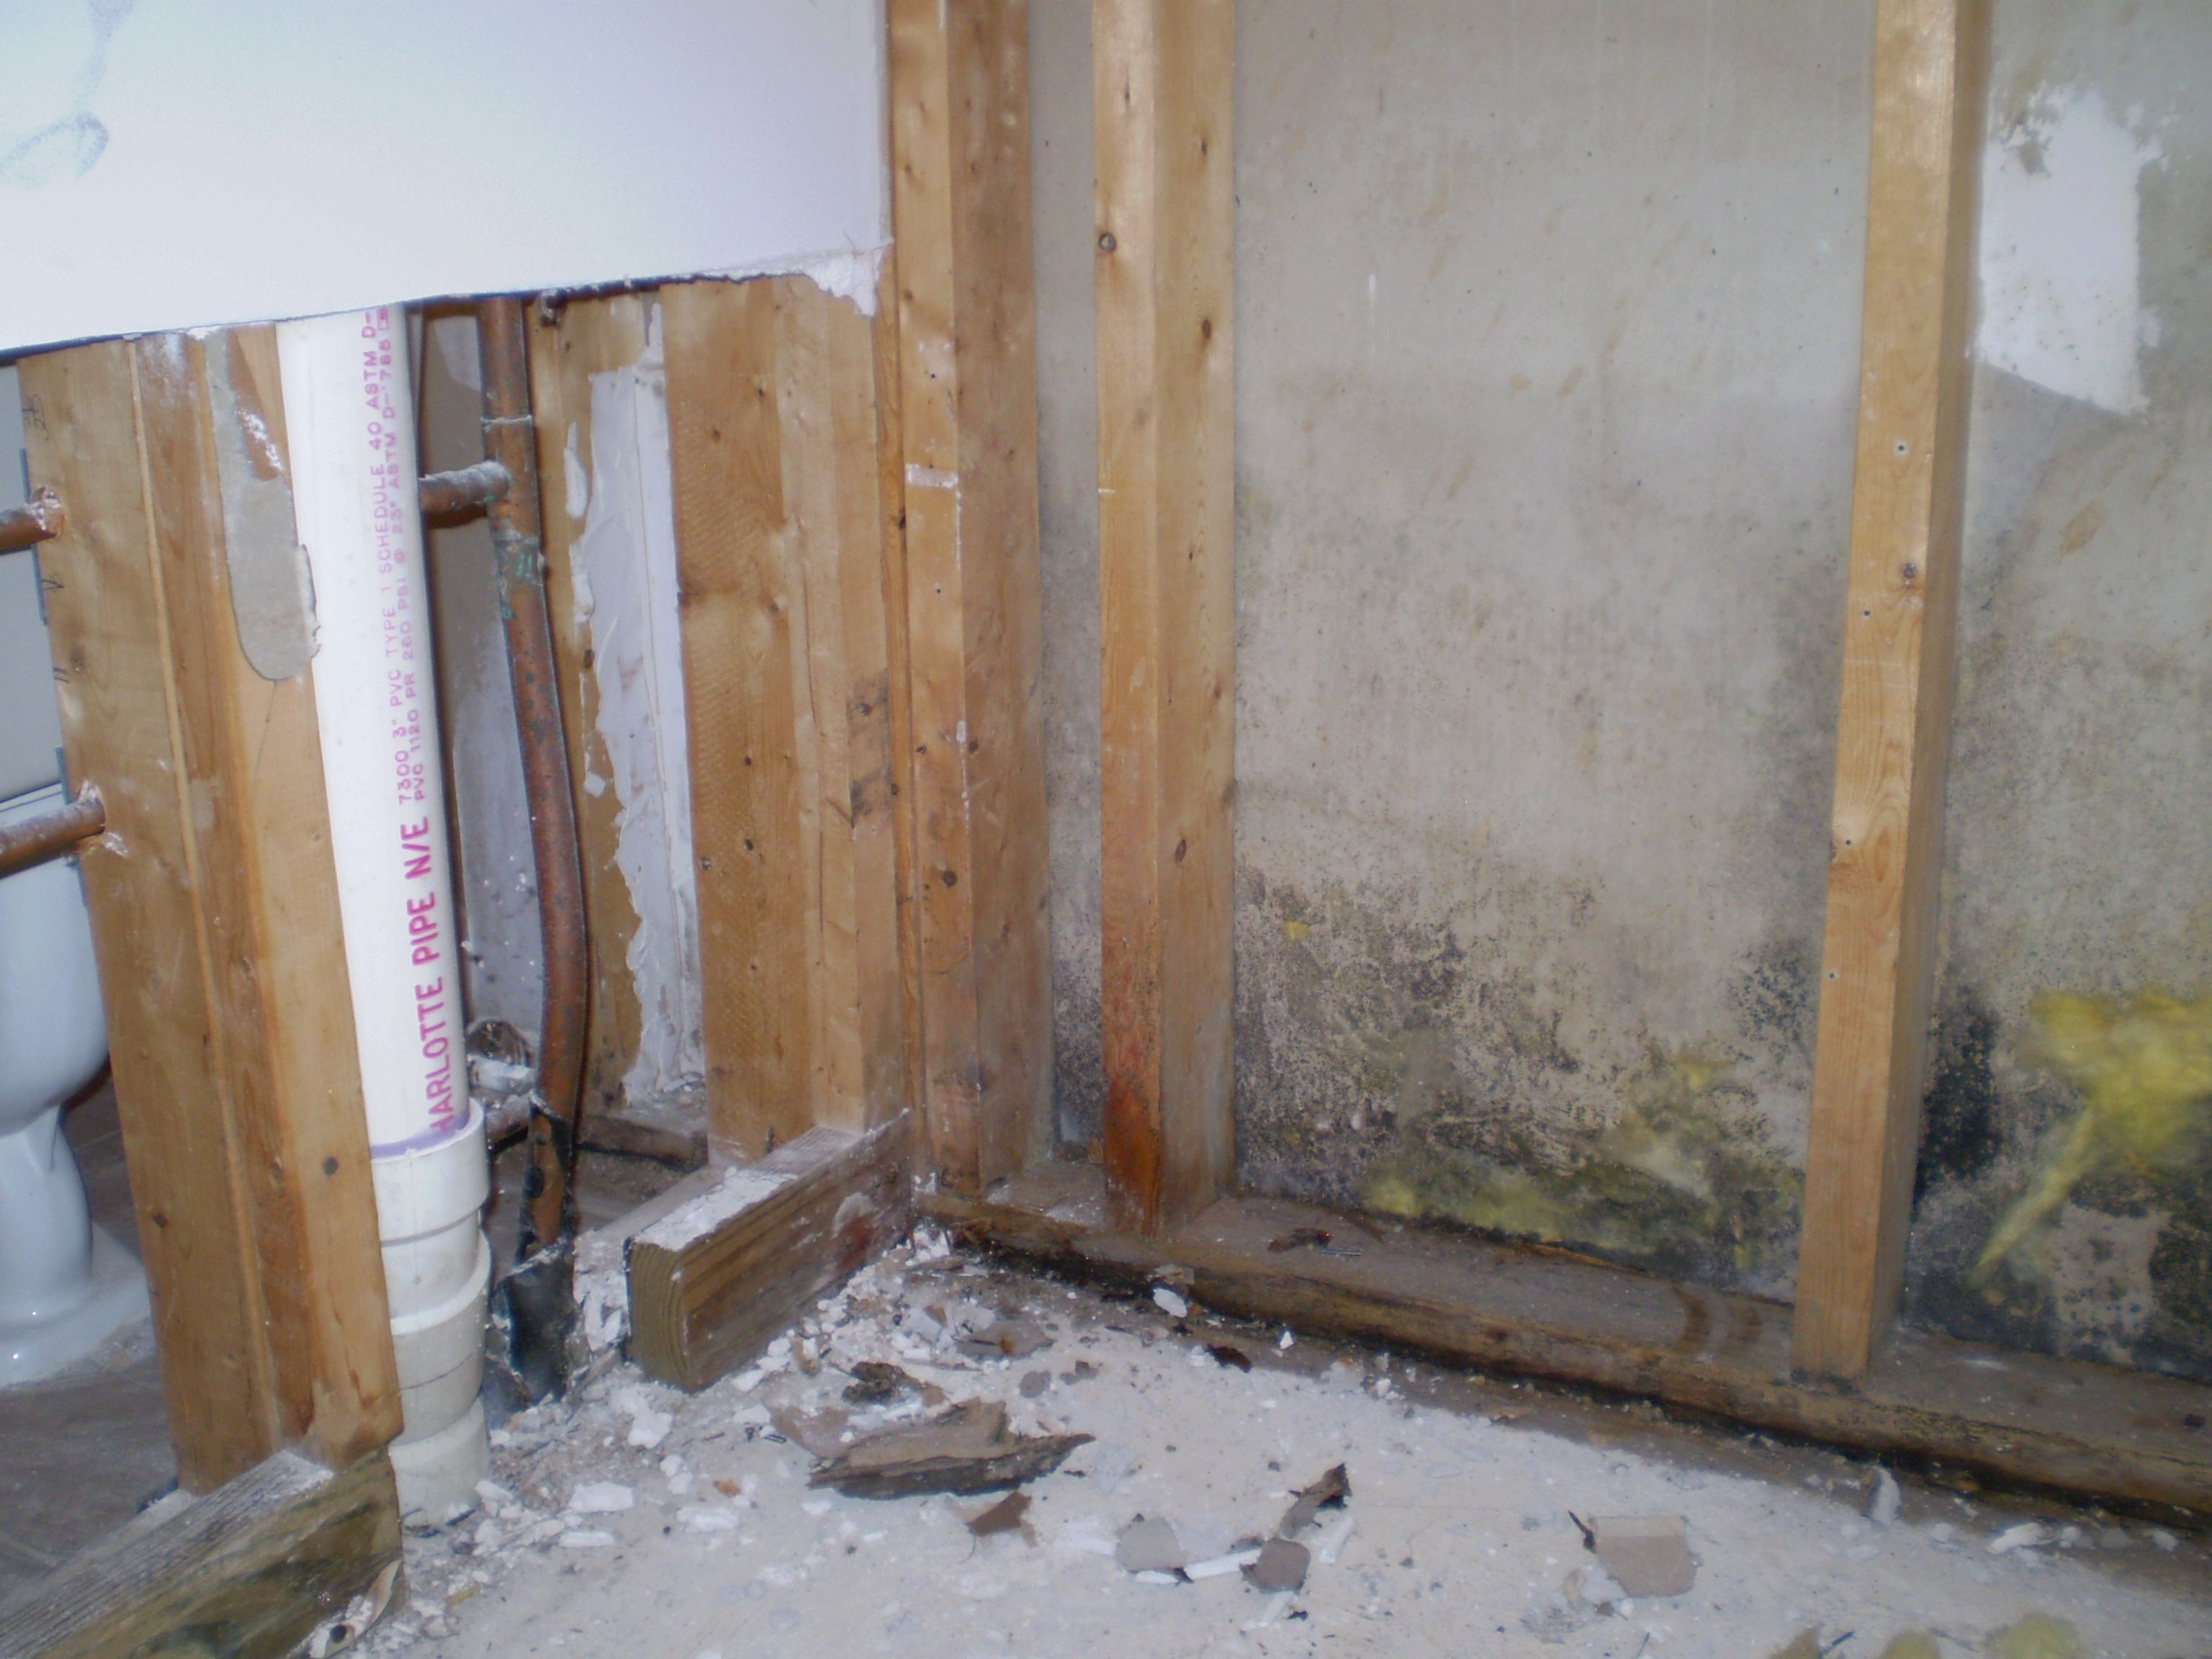 mold inside walls moldremoval mold before mold removal wall molding wall air vent. Black Bedroom Furniture Sets. Home Design Ideas